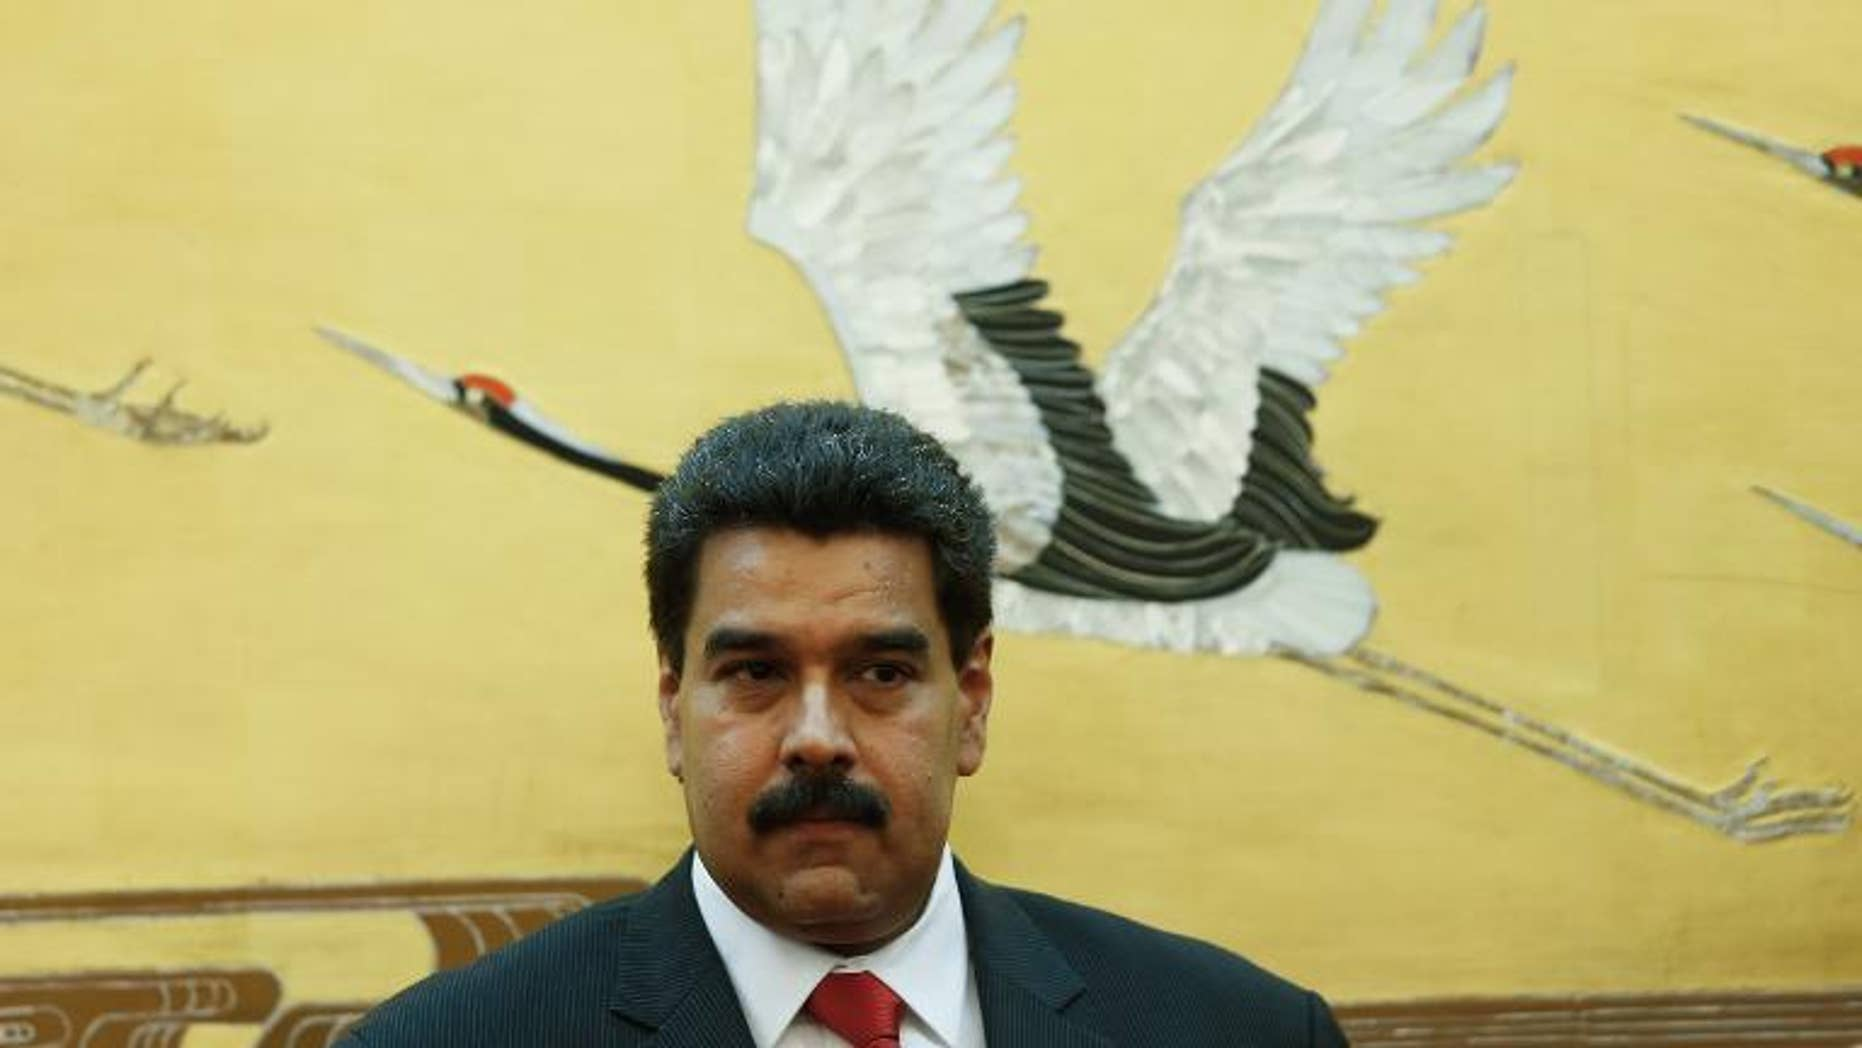 """Venezuelan President Nicolas Maduro on Wednesday said he had scrapped his plan to take part in the UN General Assembly in New York to """"safeguard his physical integrity"""" after unspecified threats to his """"life."""""""